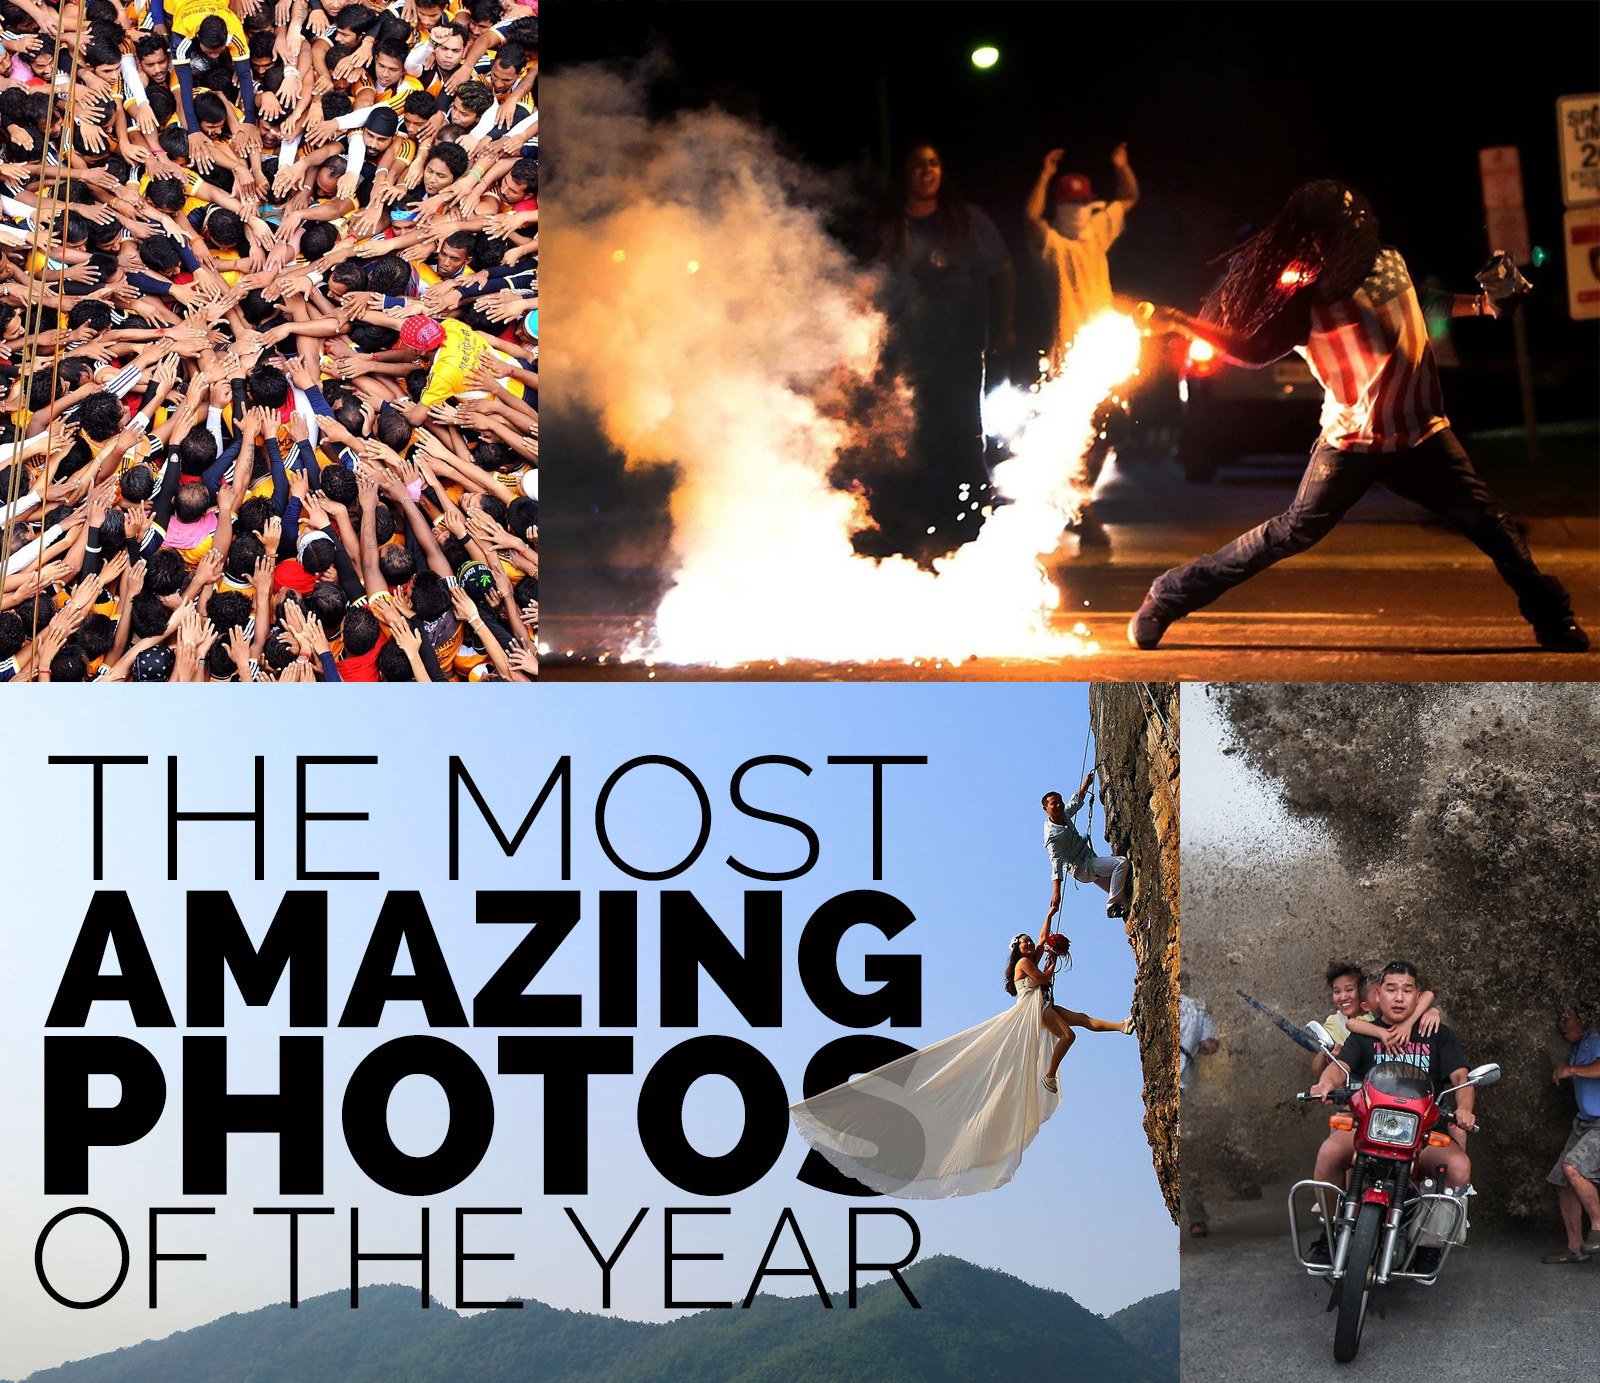 Most Amazing: 74 Of The Most Amazing News Photos Of 2014